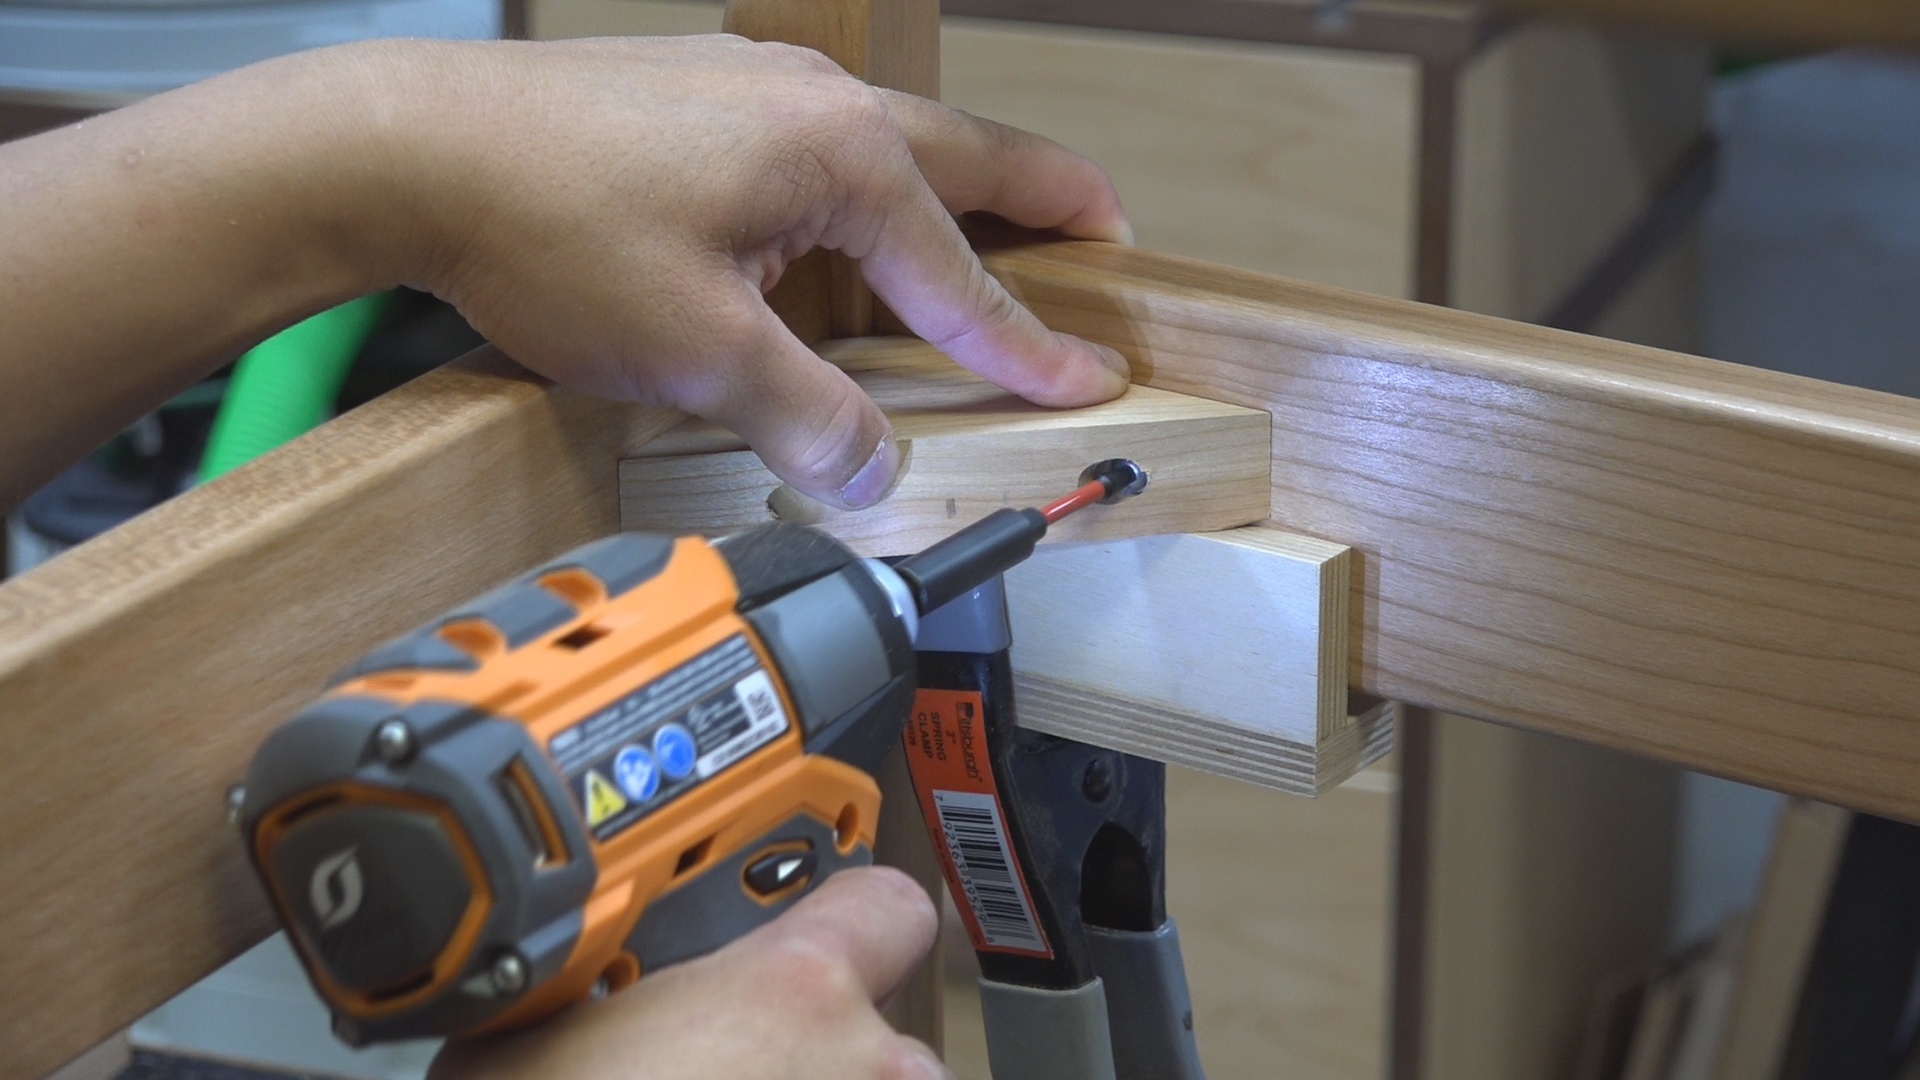 I pre-drilled and drove the screw in for the corner blocks Using the Ridgid Octane 18V Hammer Drill/Driver and 6-Mode Impact Driver.